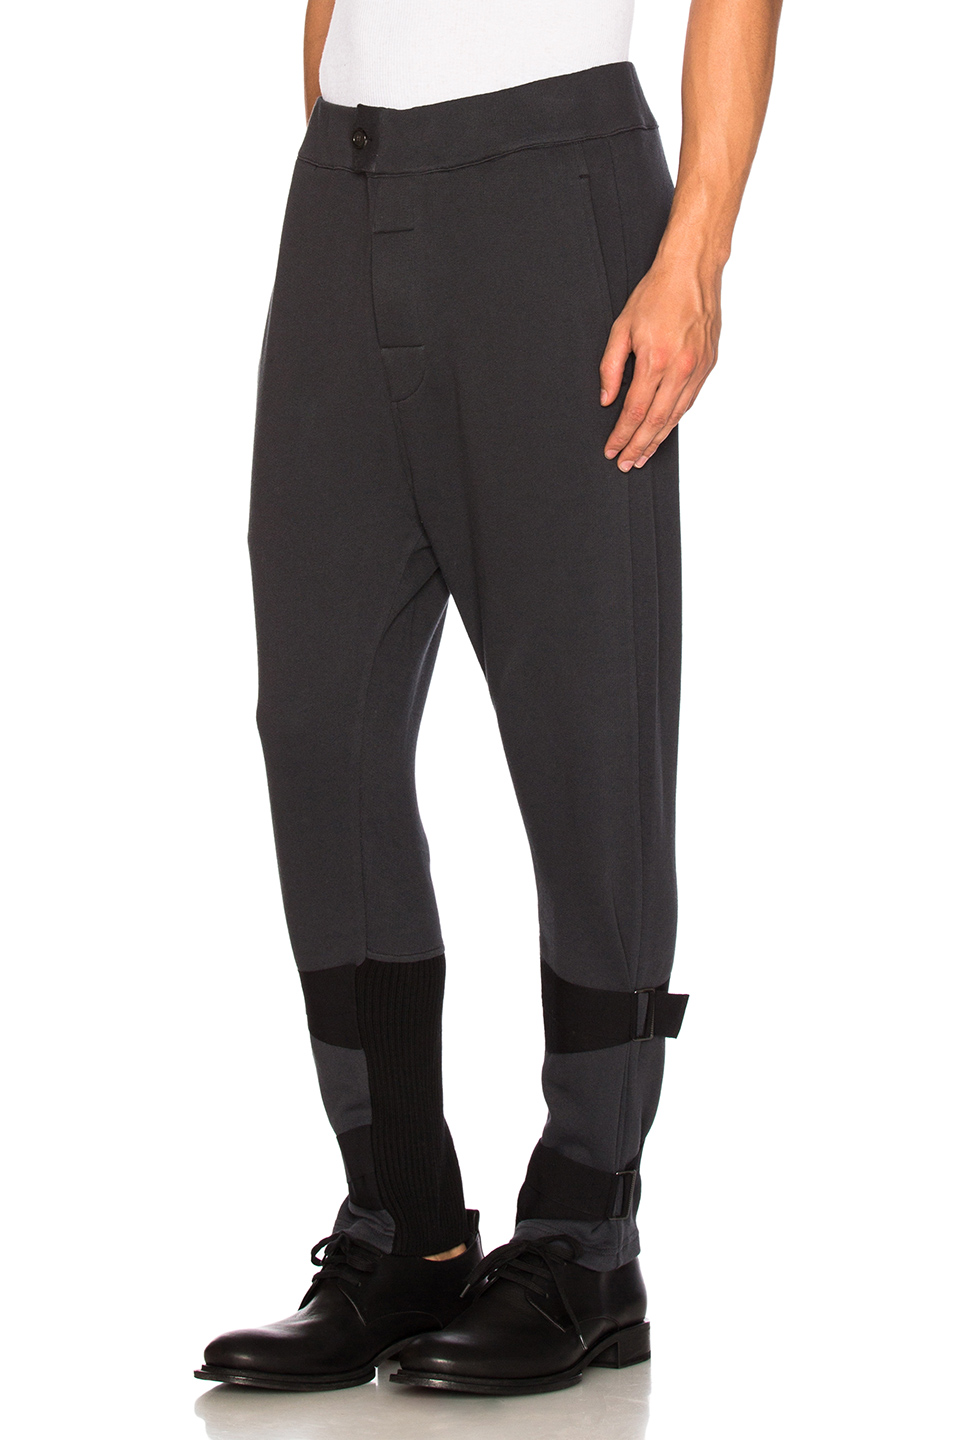 Ann Demeulemeester Strap Sweatpants in Black